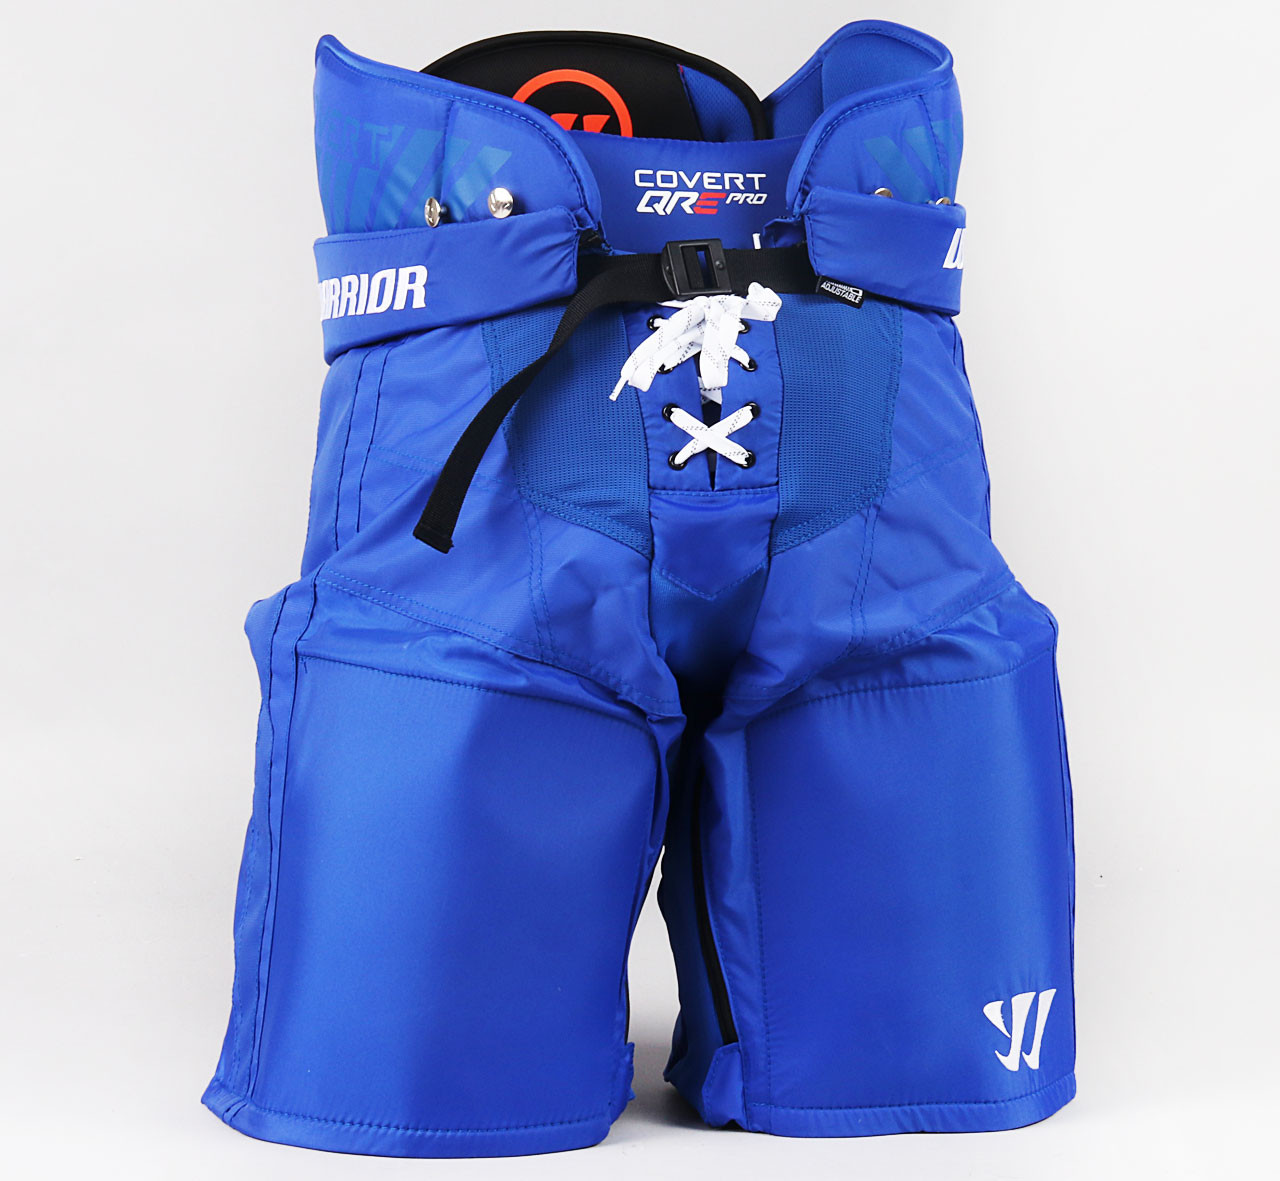 Size S - Royal Blue - Warrior Covert QR Edge Pro Pants - SPHL Overstock